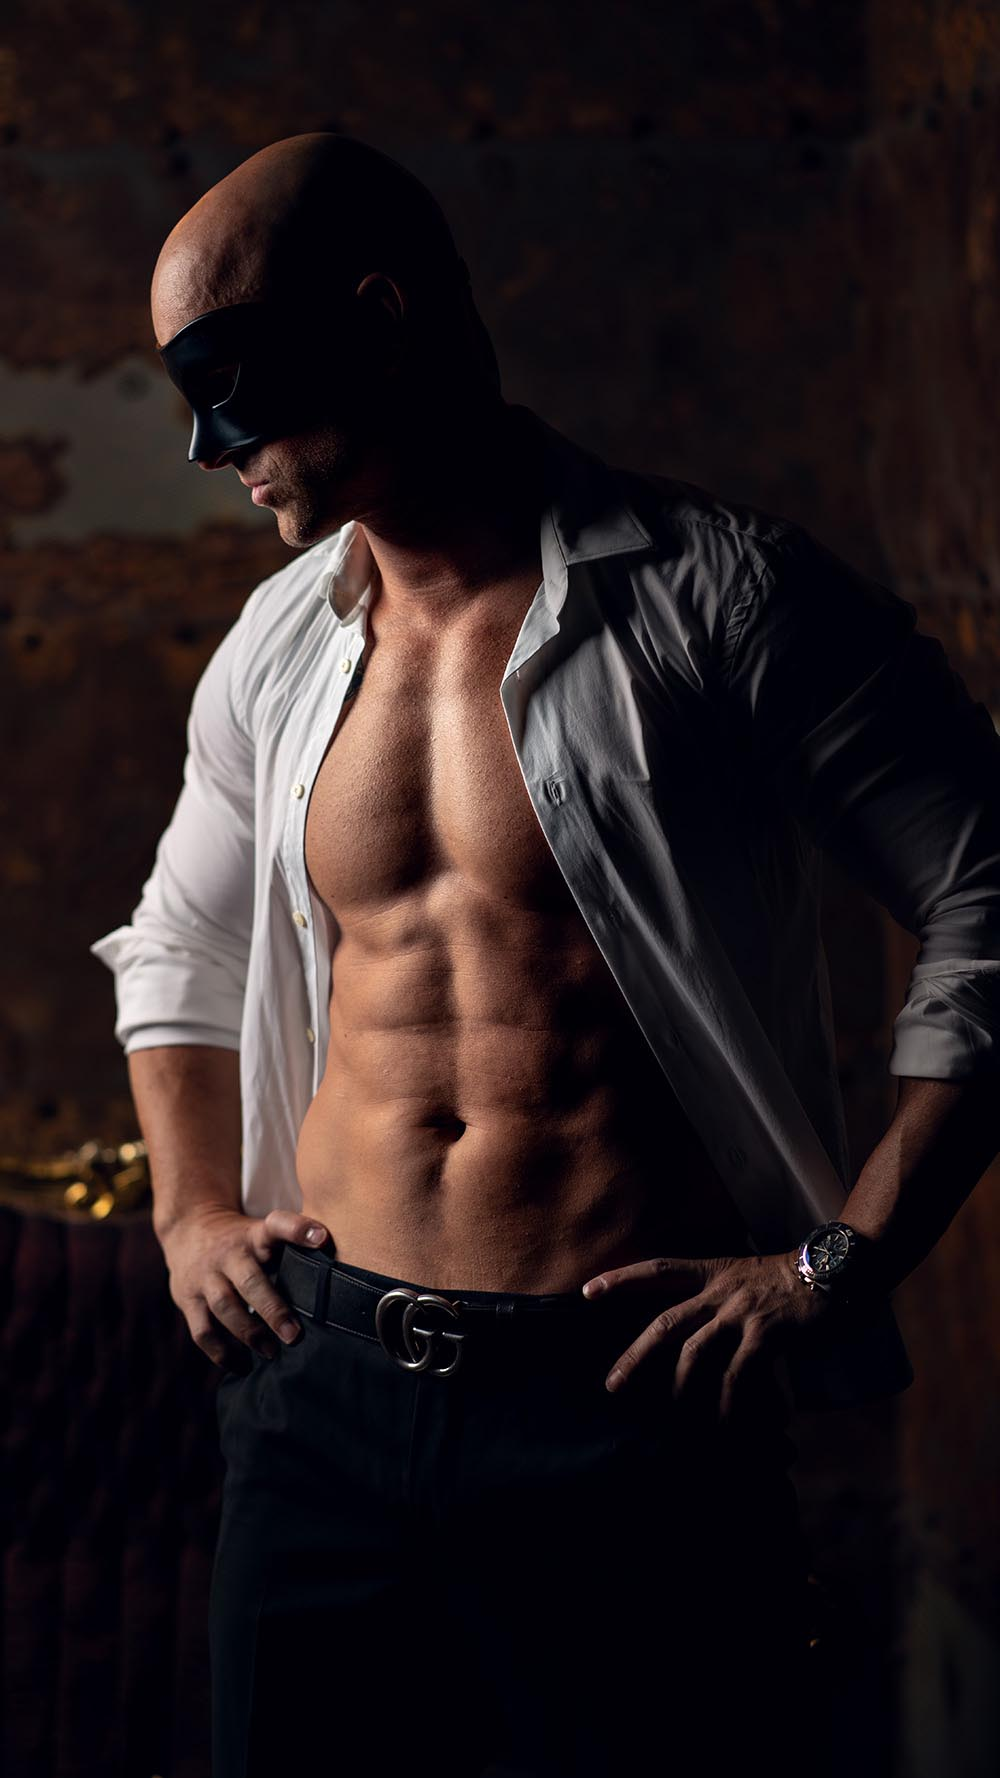 Shades of Grey mit Stripper CHRIS aus Wien